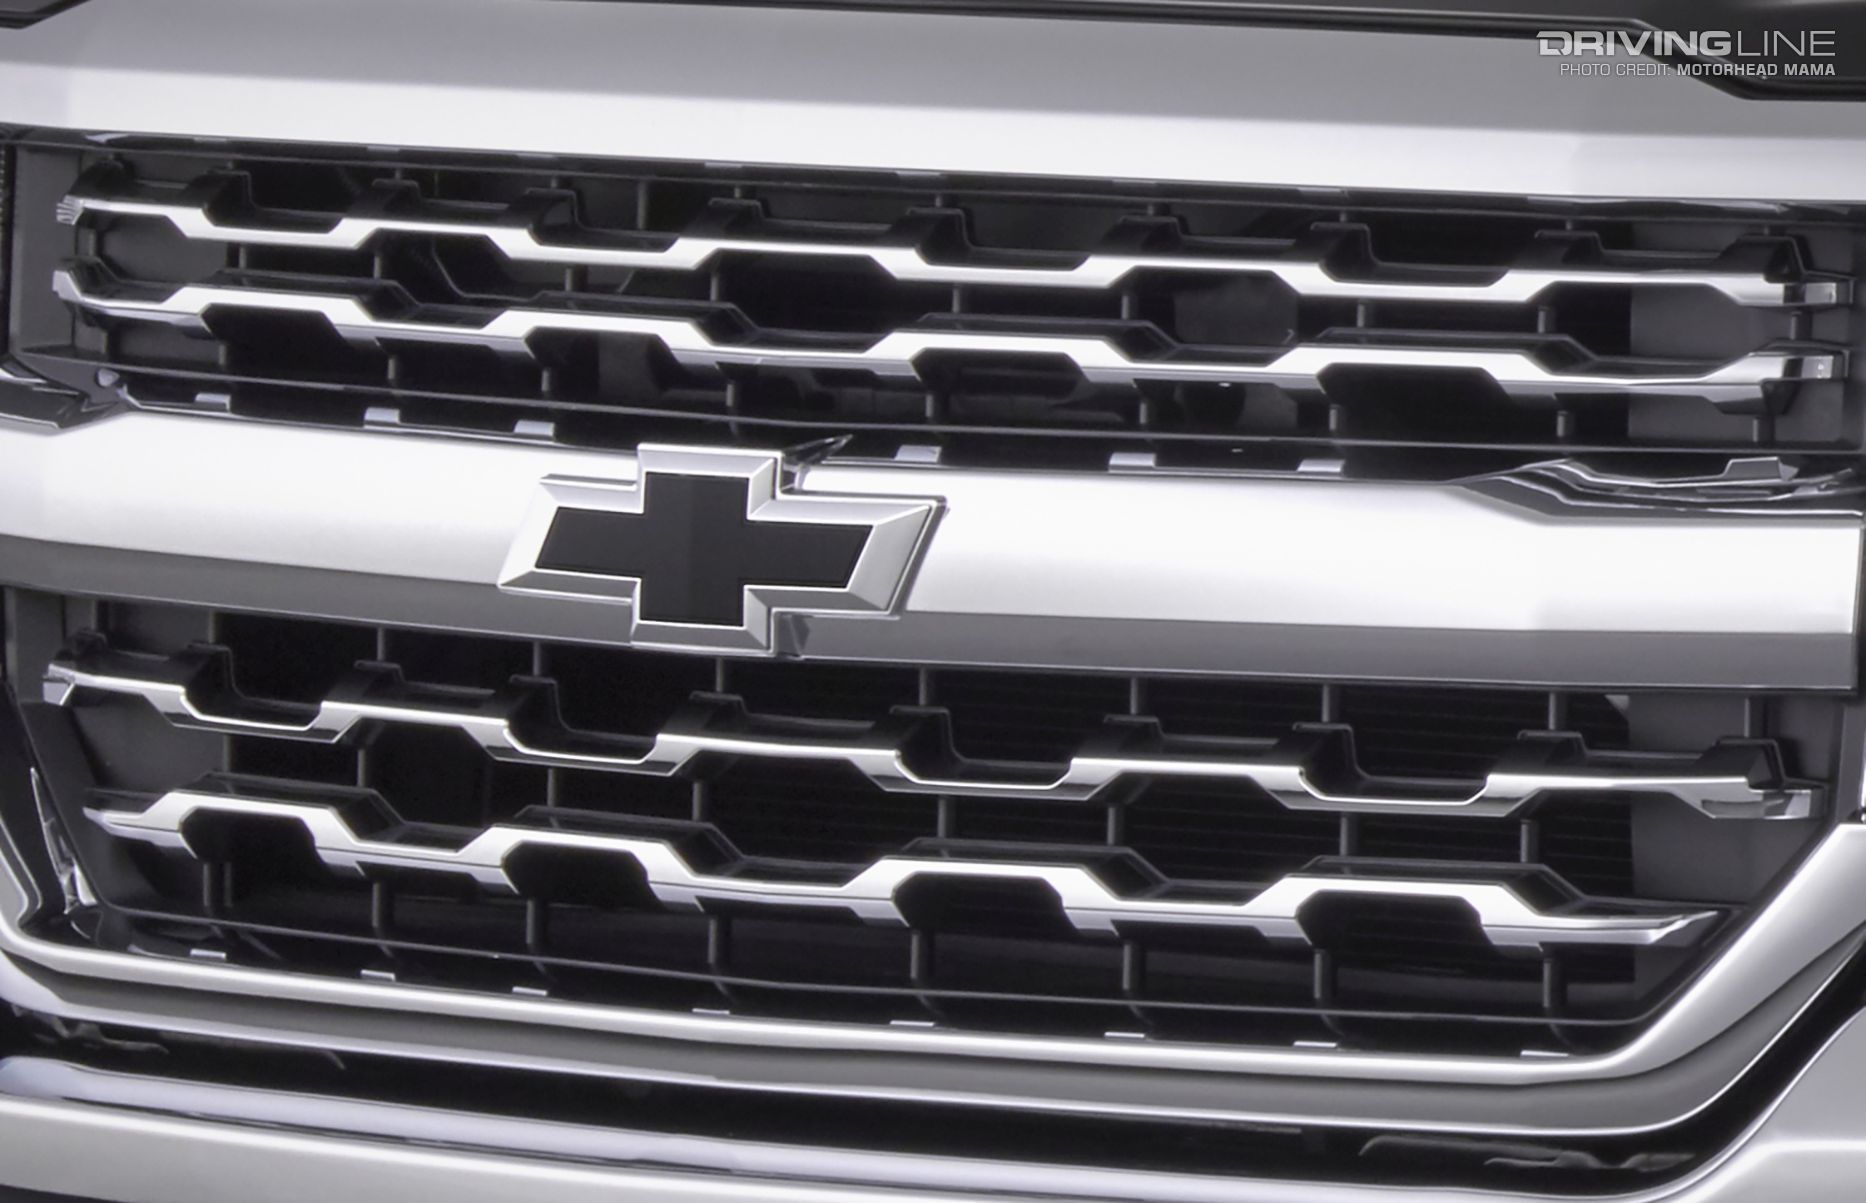 9,990 Reasons to Buy a Chevrolet Silverado 1500 LTZ Crew ...